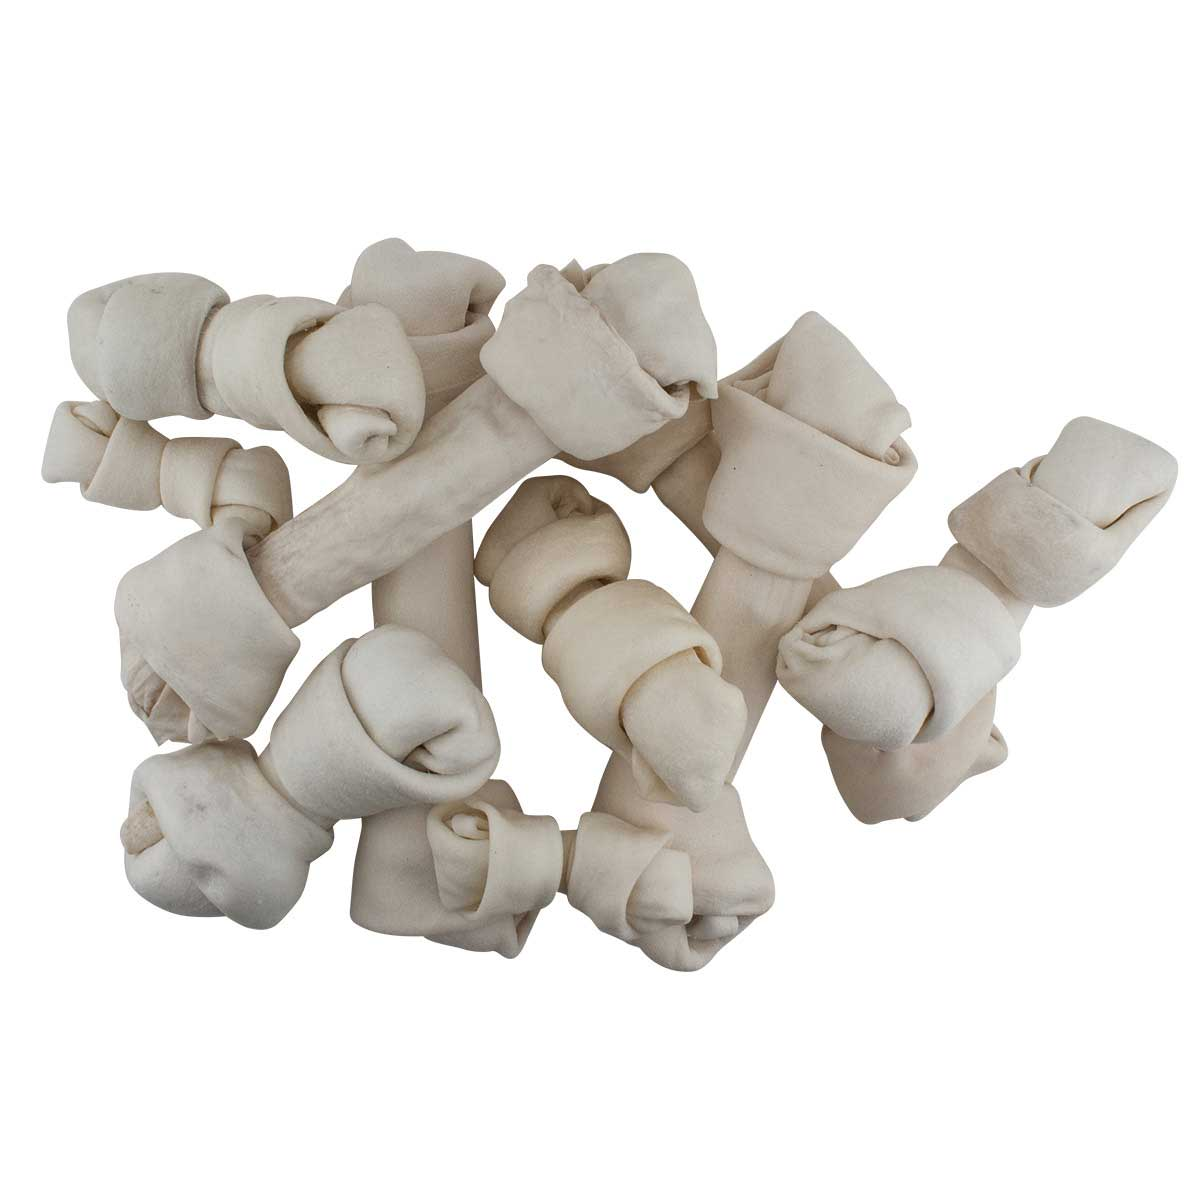 """X Large 14"""" - 15"""" Rawhide Knotted Bone Chew for Dogs"""